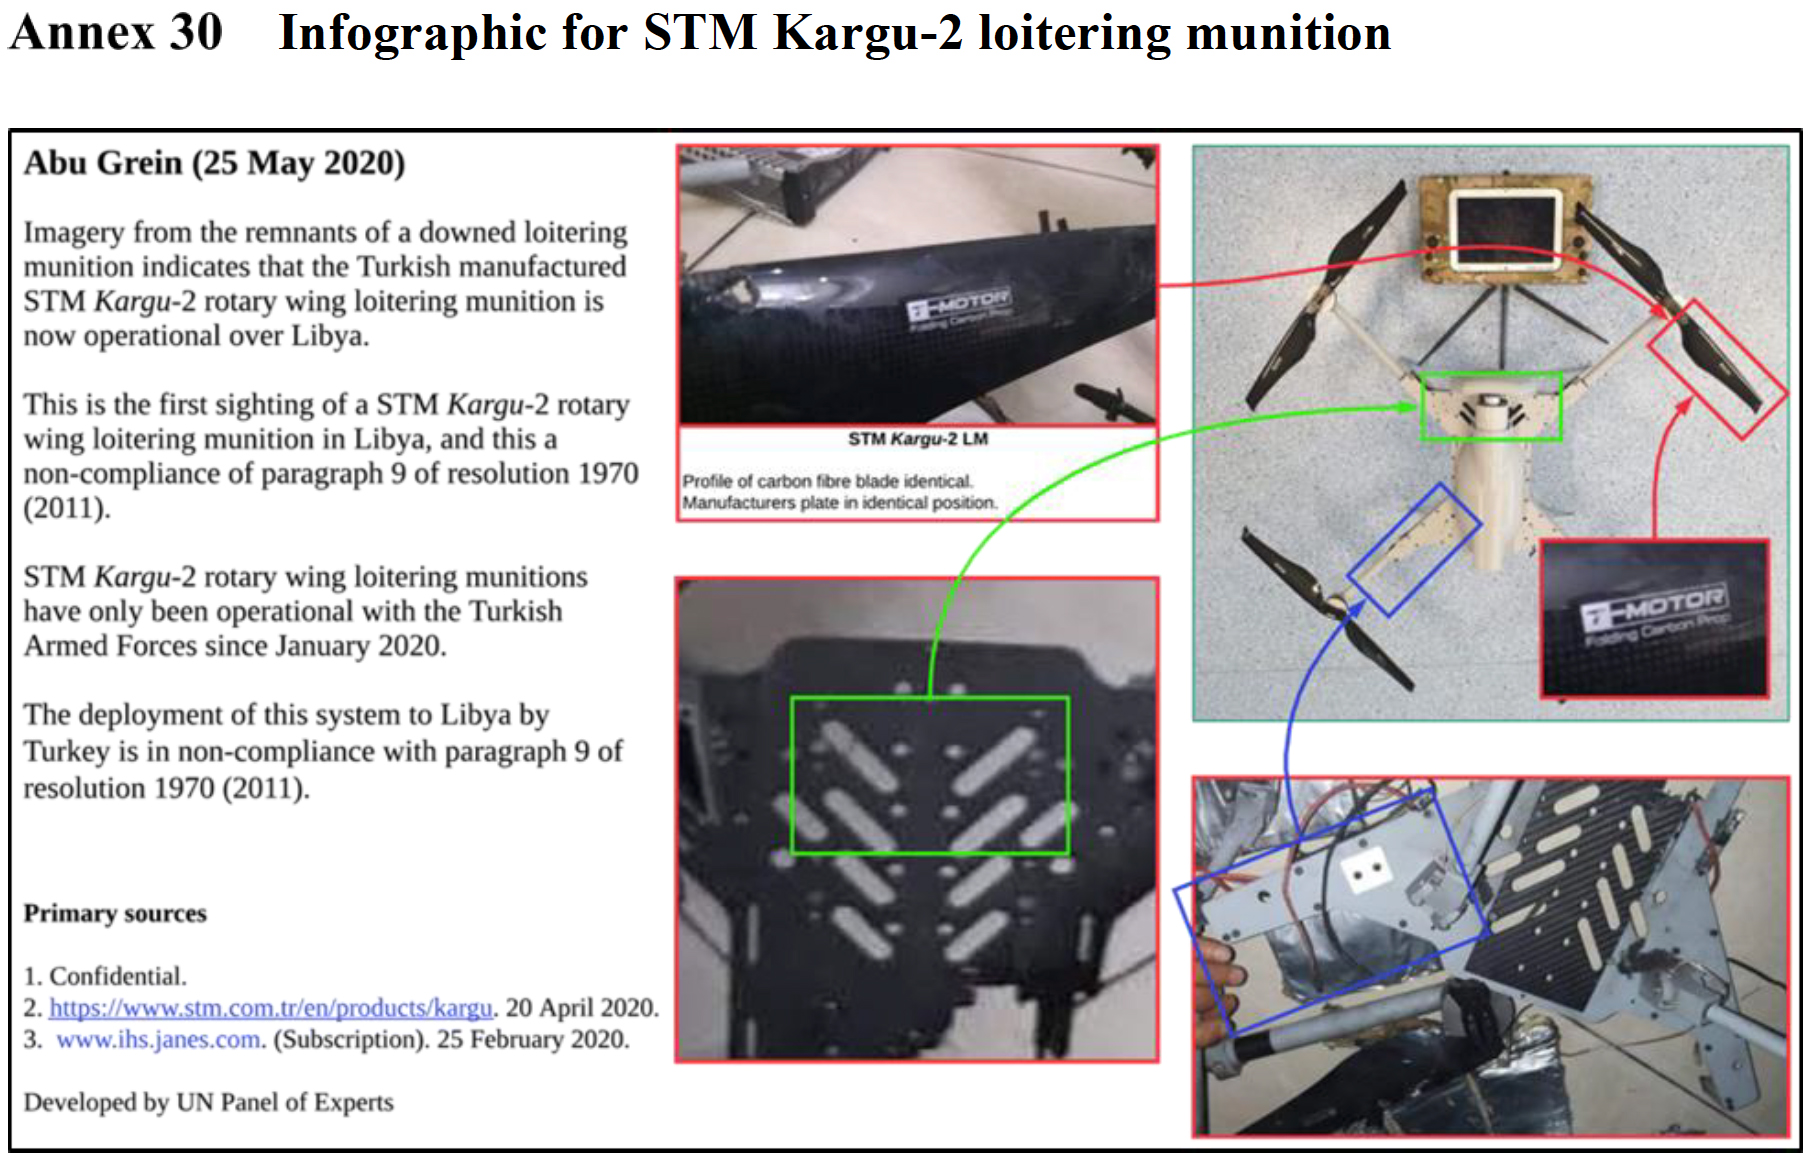 Annex 30 of the UN report depicts photographic evidence of a downed STM Kargu-2 system.